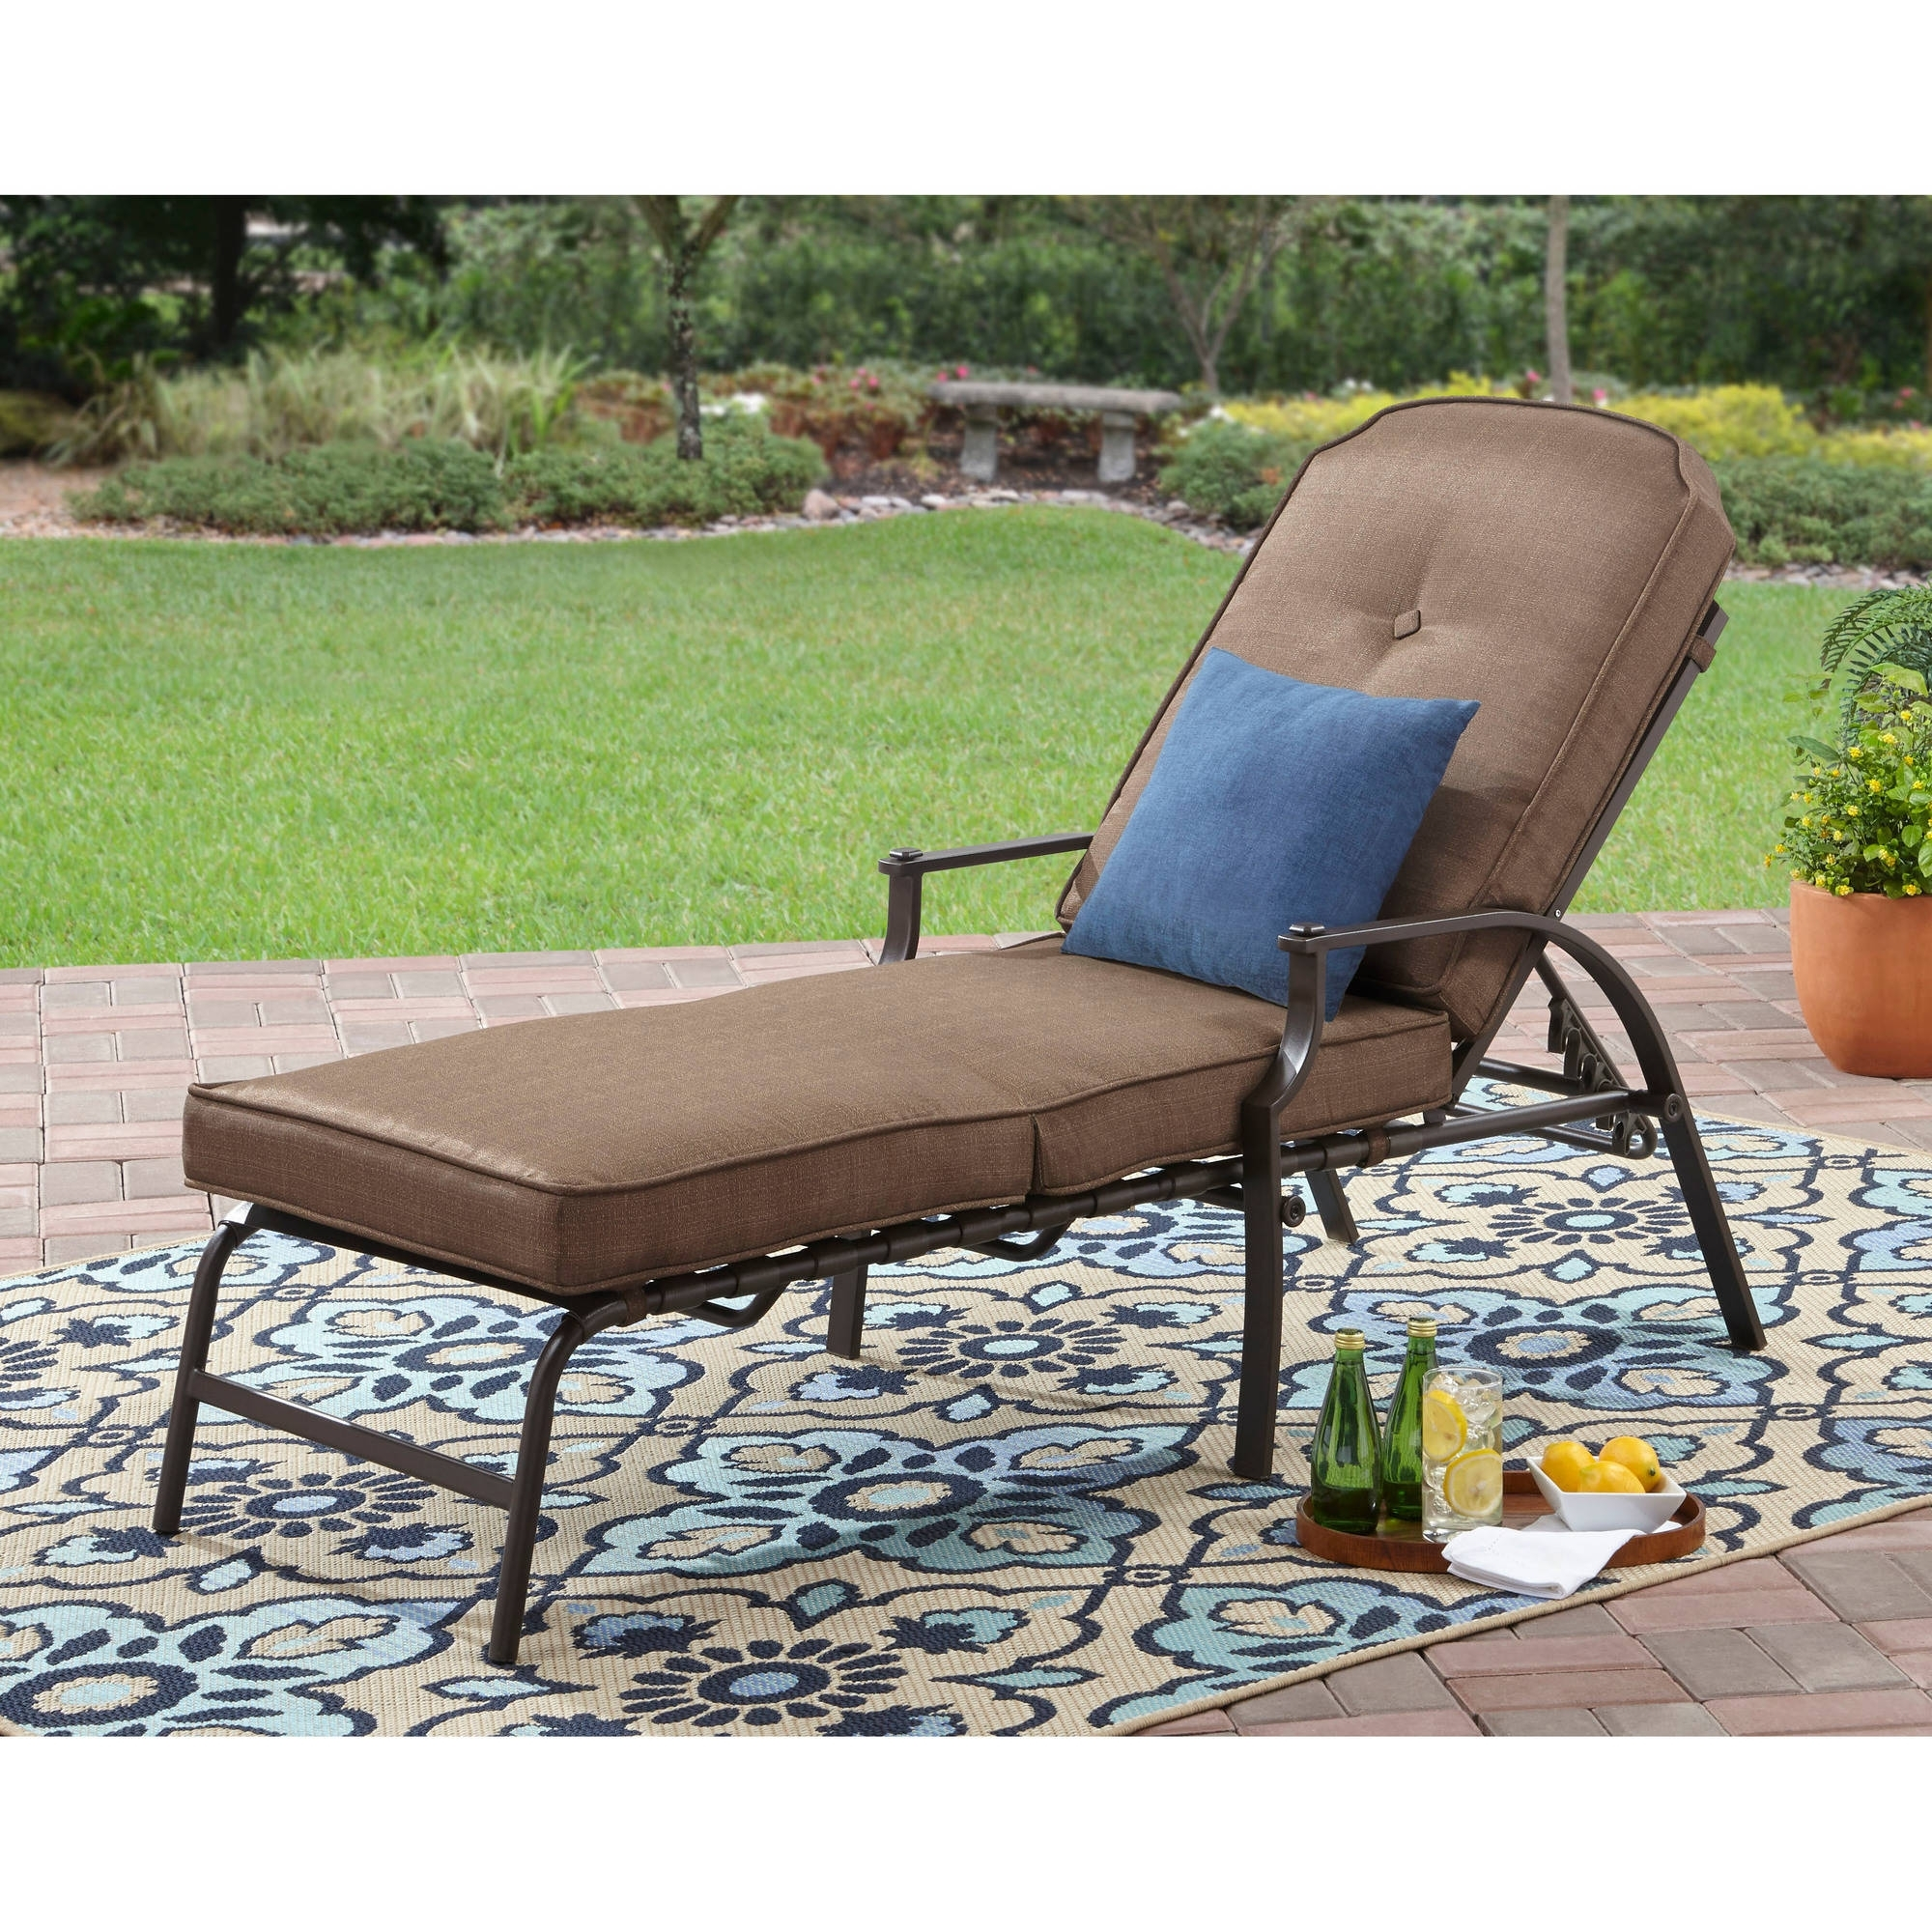 Mainstays Wentworth Chaise Lounge – Walmart Regarding Preferred Walmart Chaise Lounge Cushions (View 12 of 15)